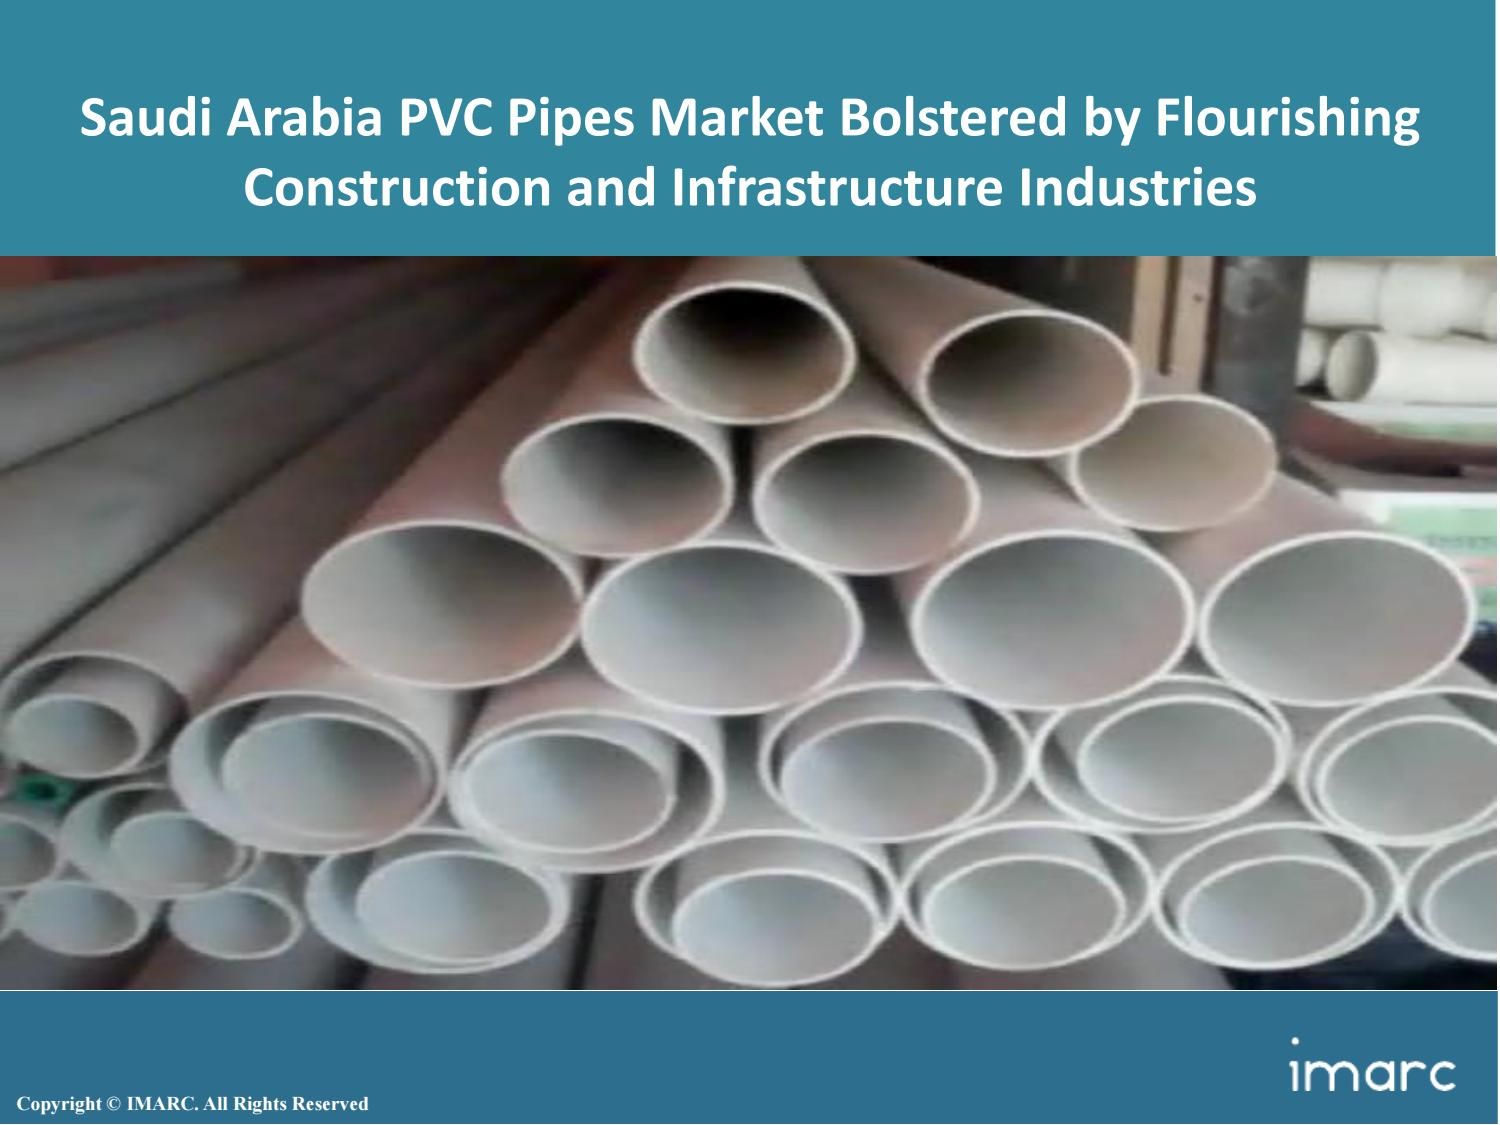 Saudi Arabia PVC Pipes Market: Share, Size, Industry Trends And Forecast  Report 2017-2018